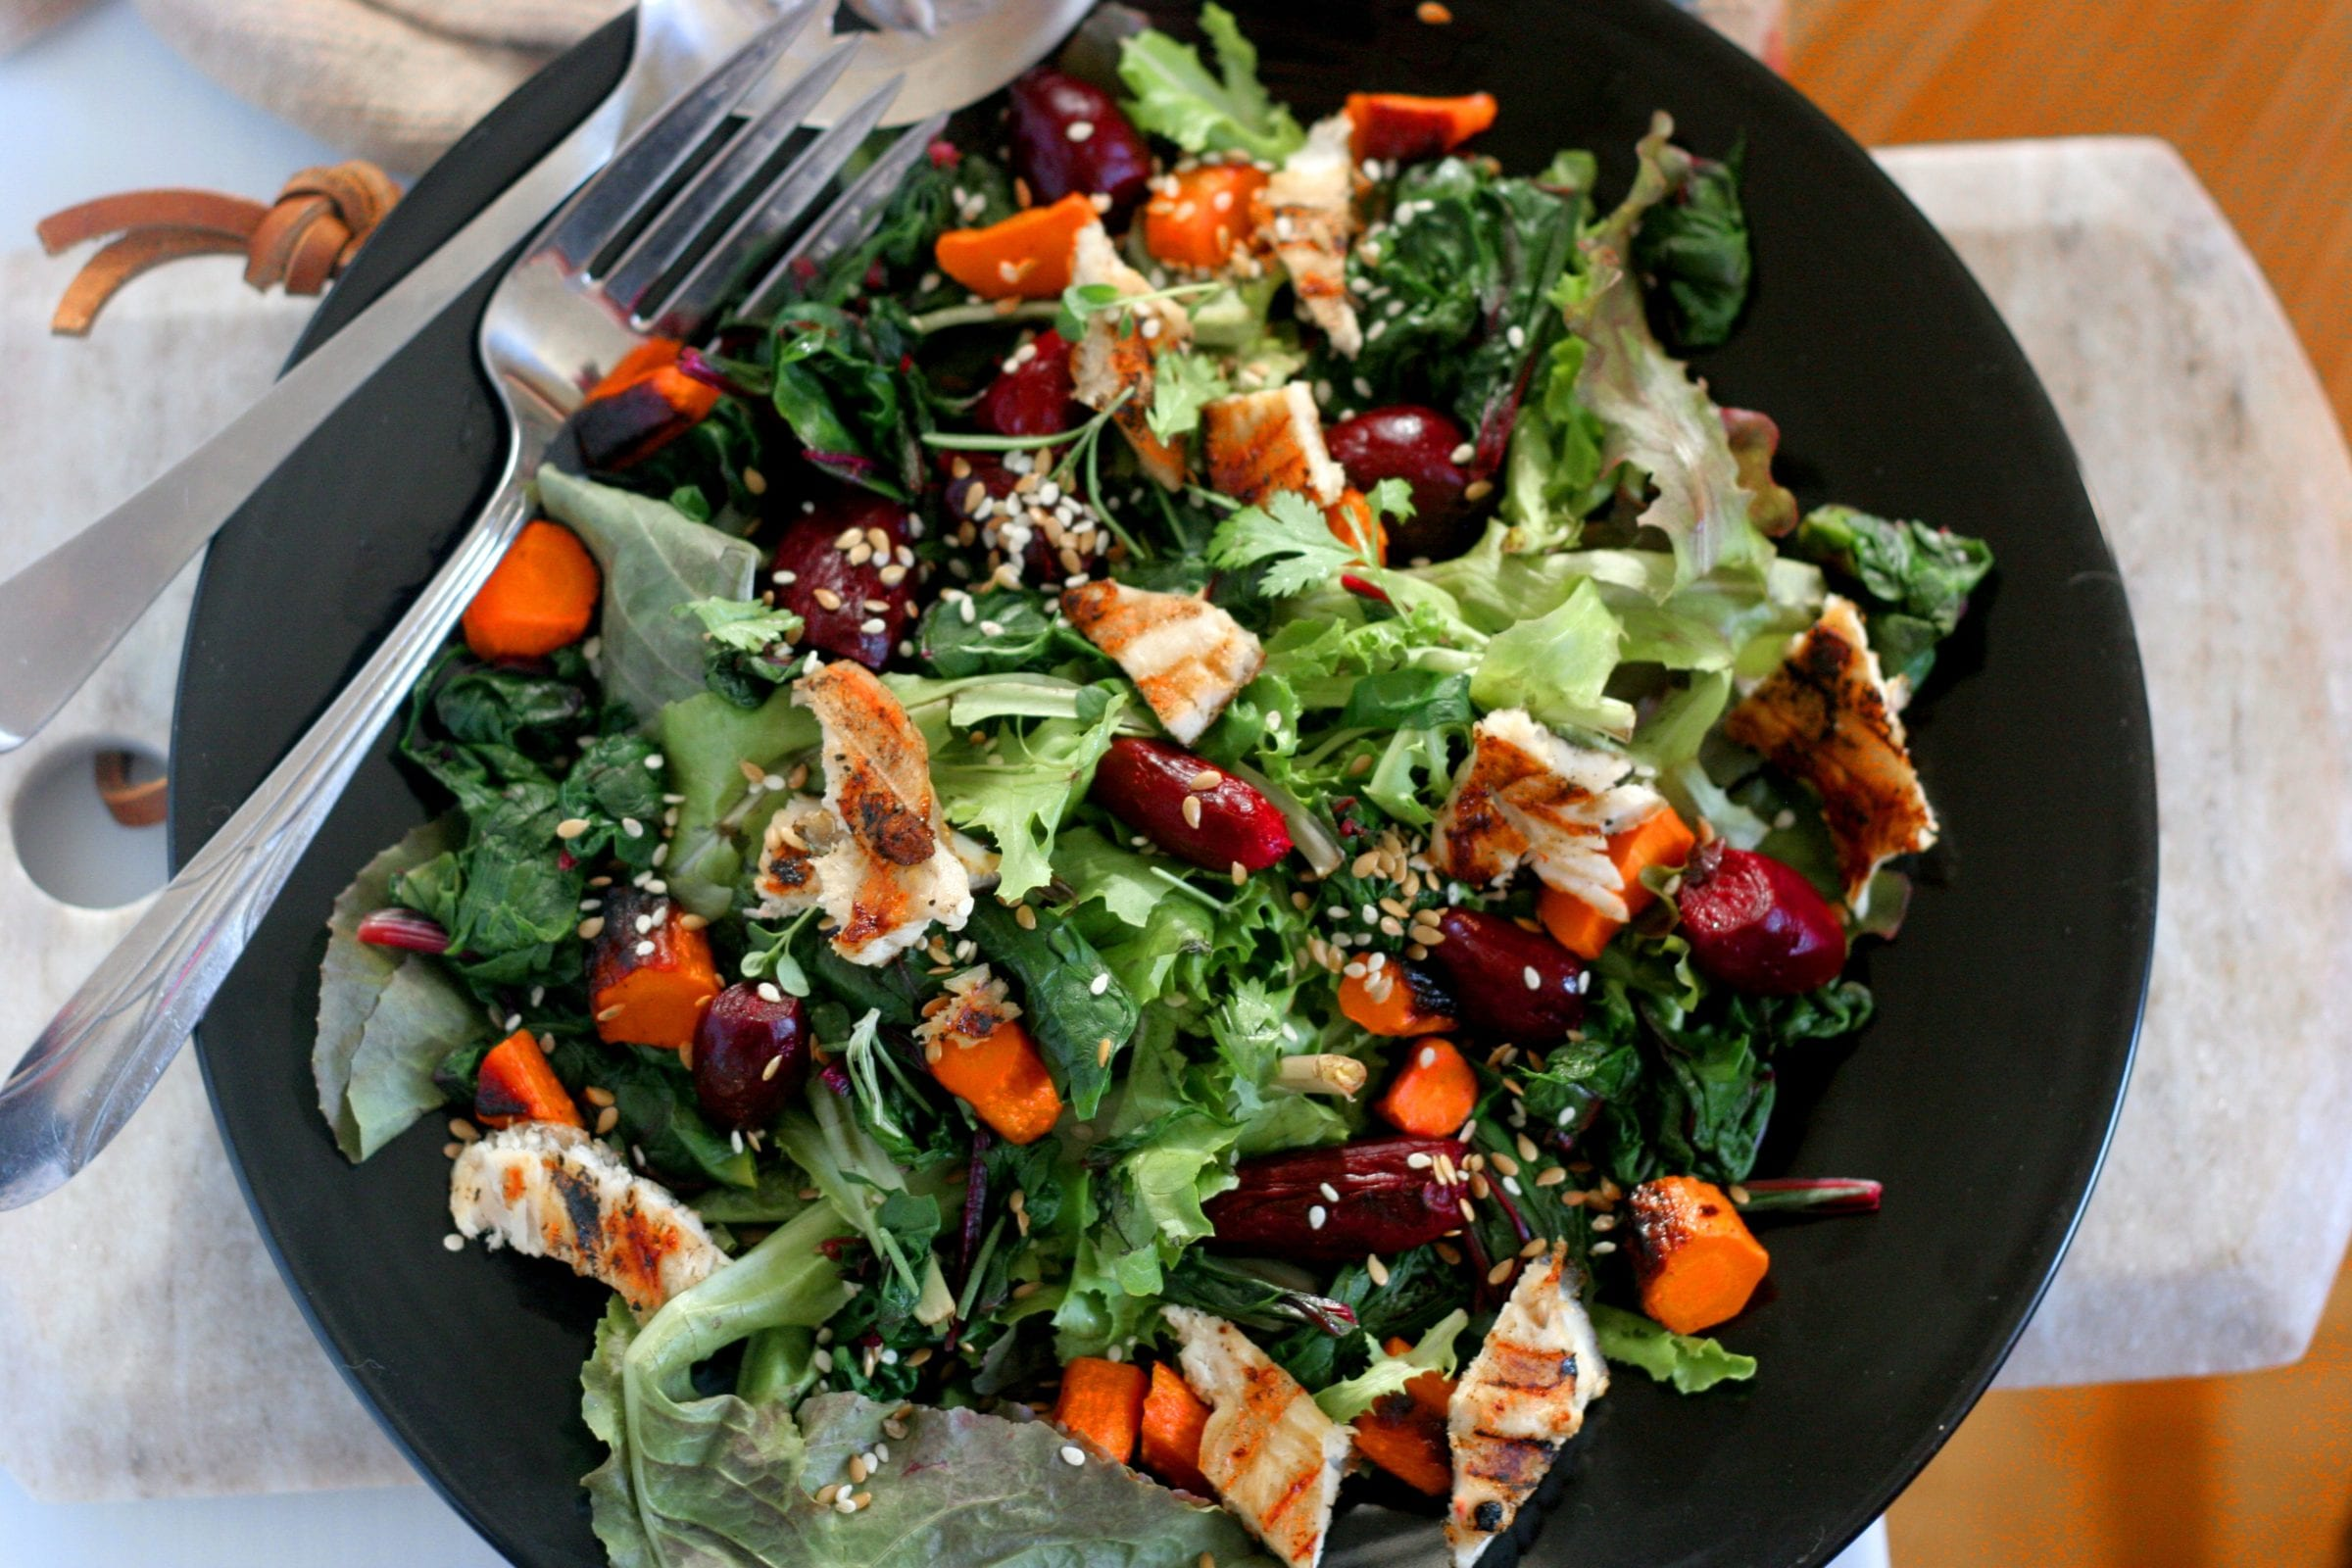 Roasted Beet and Carrot Salad with Herbs: To Boost Progesterone and Metabolize Estrogen